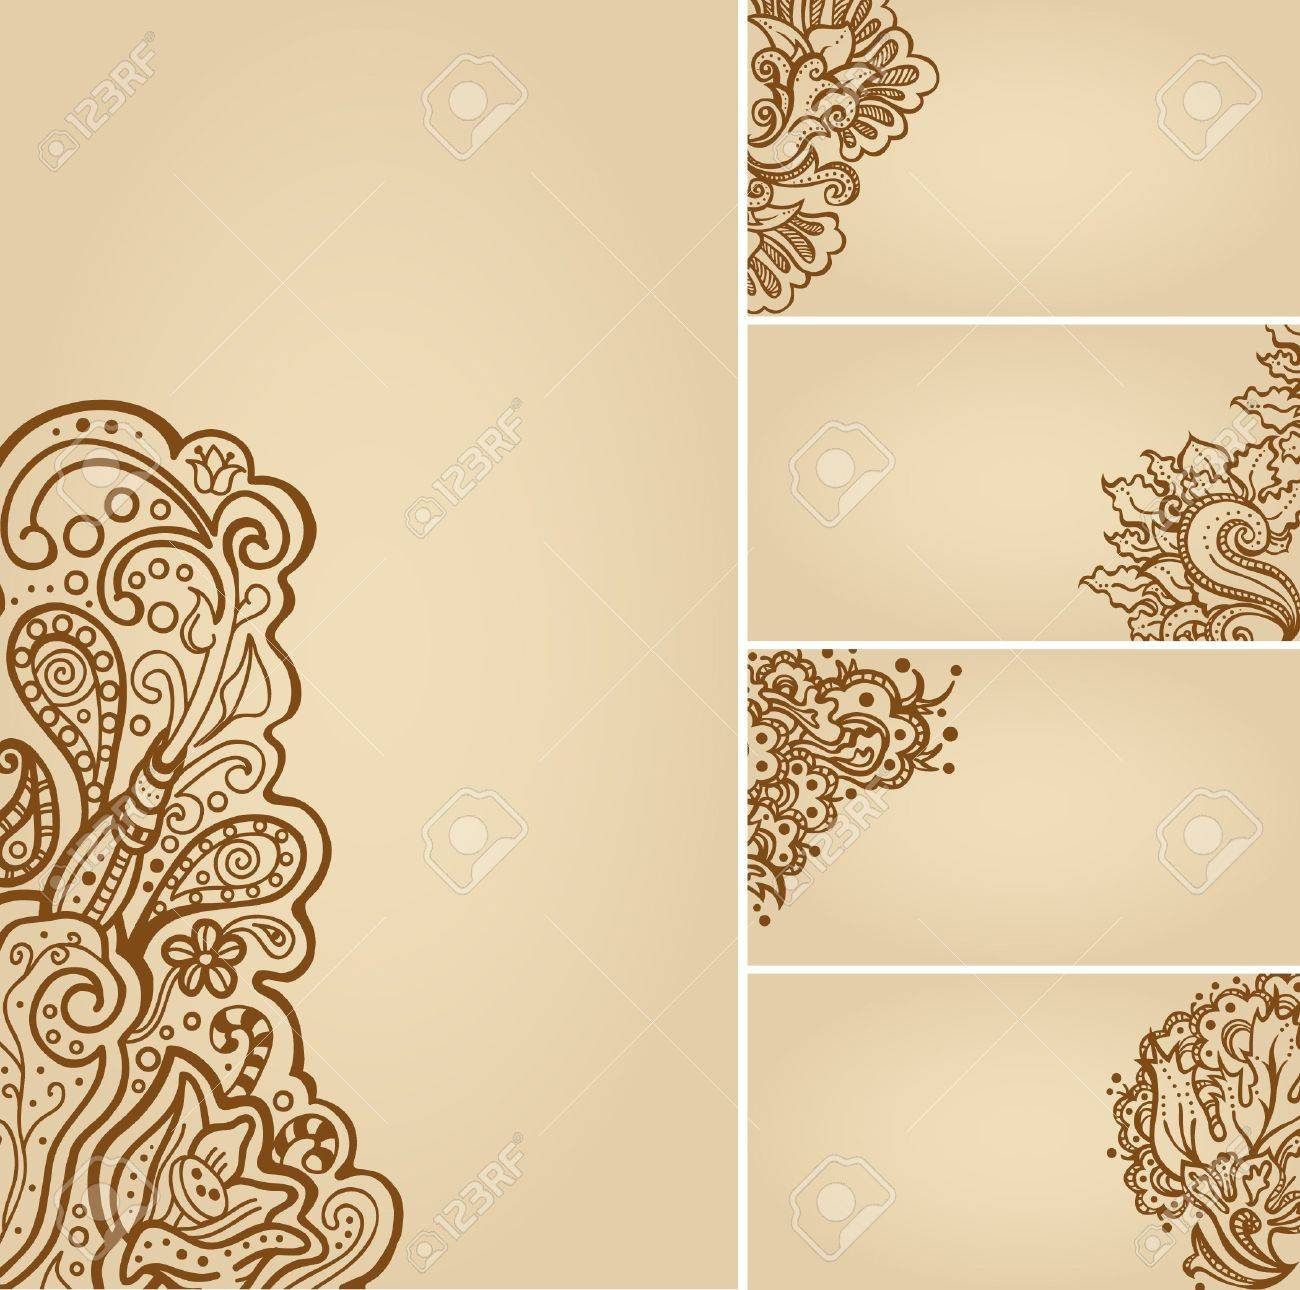 Set of henna tattoo floral banners and business card templates set of henna tattoo floral banners and business card templates stock vector 19759160 friedricerecipe Choice Image